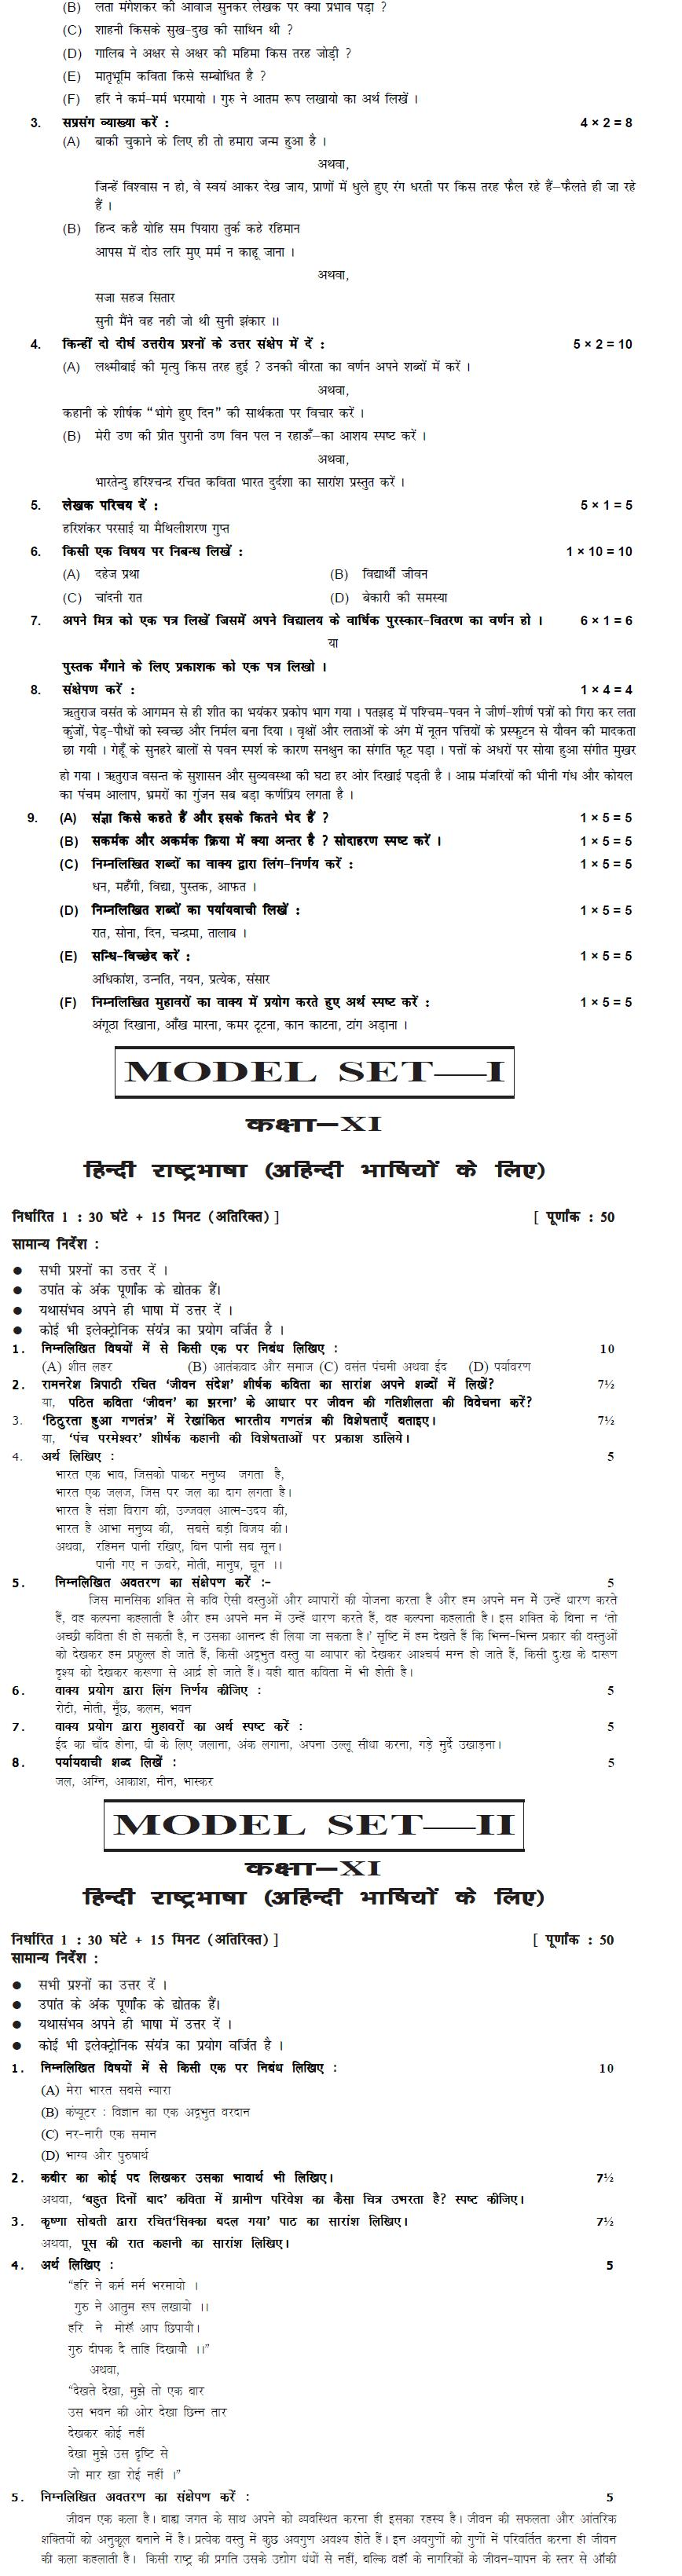 Bihar Board Class XI Humanities Model Question Papers - Hindi